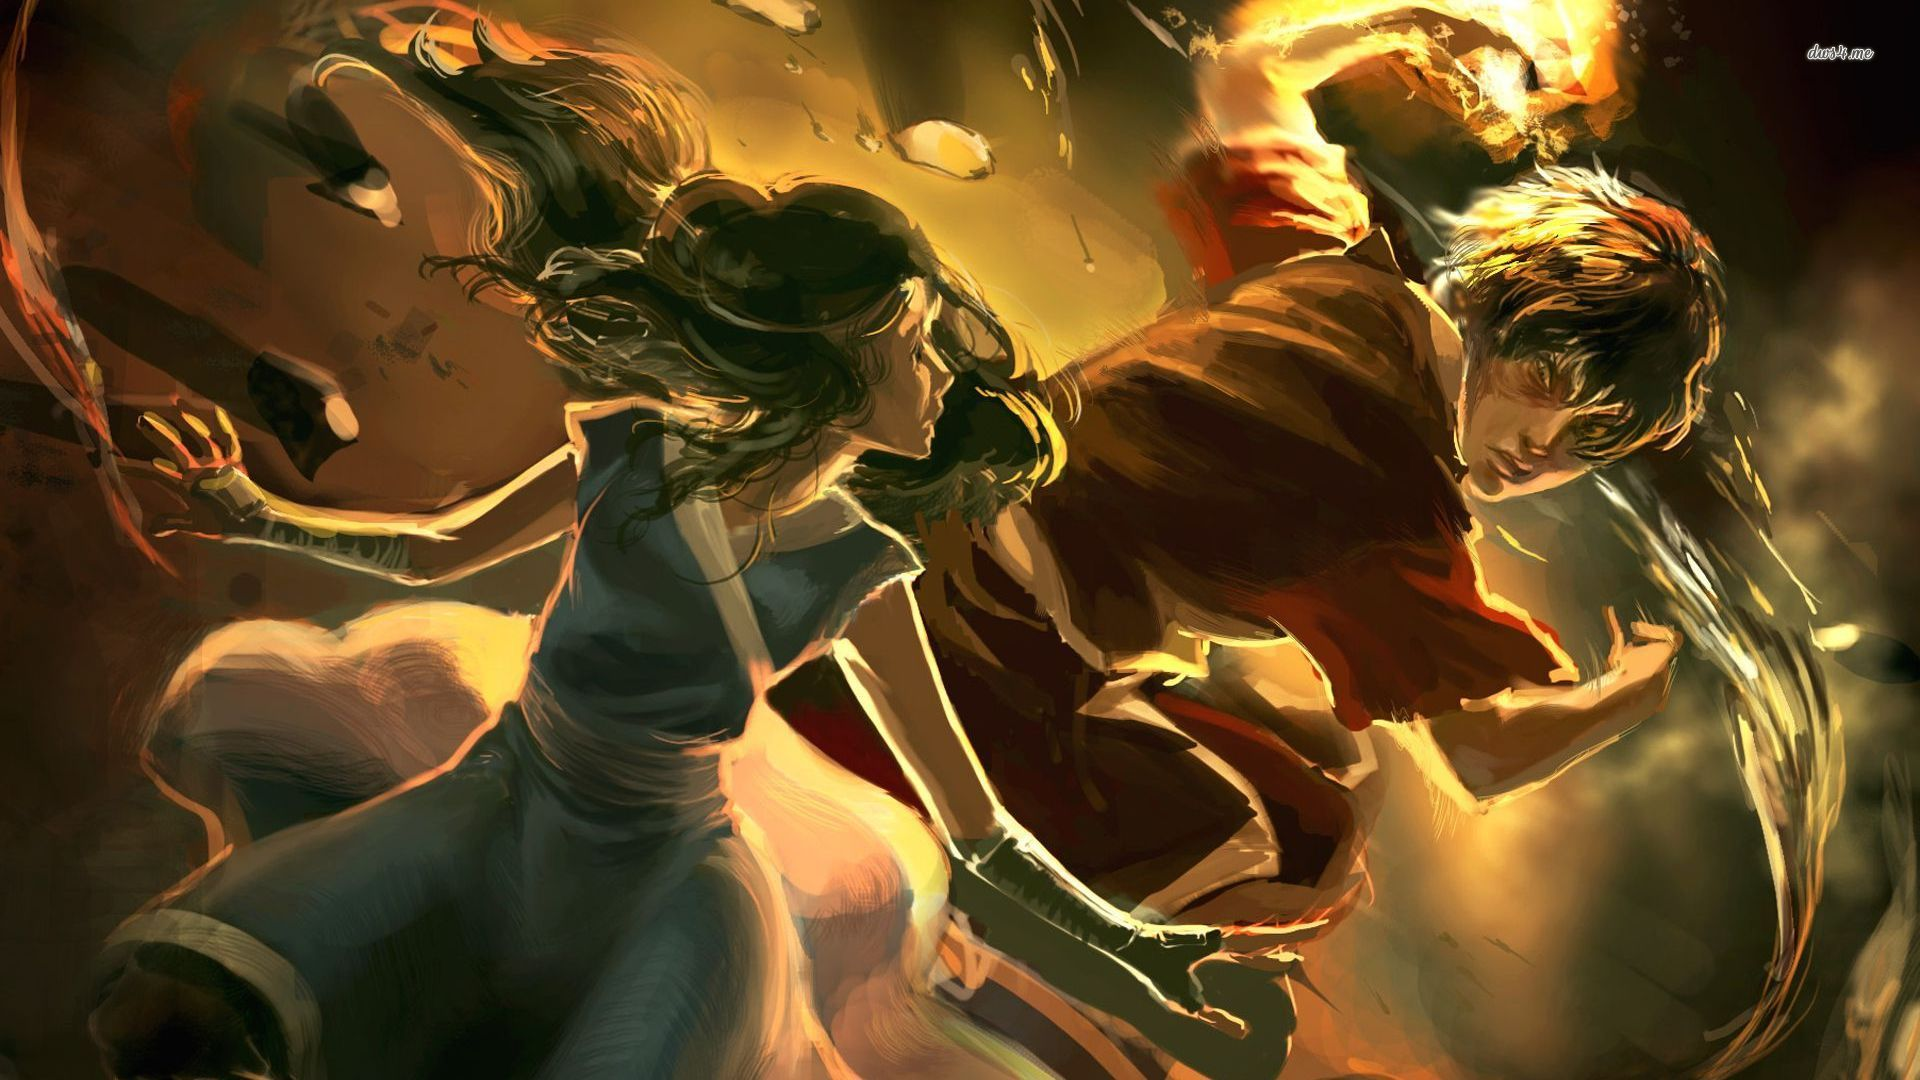 Avatar The Last Airbender Hd Wallpaper Posted By Samantha Sellers